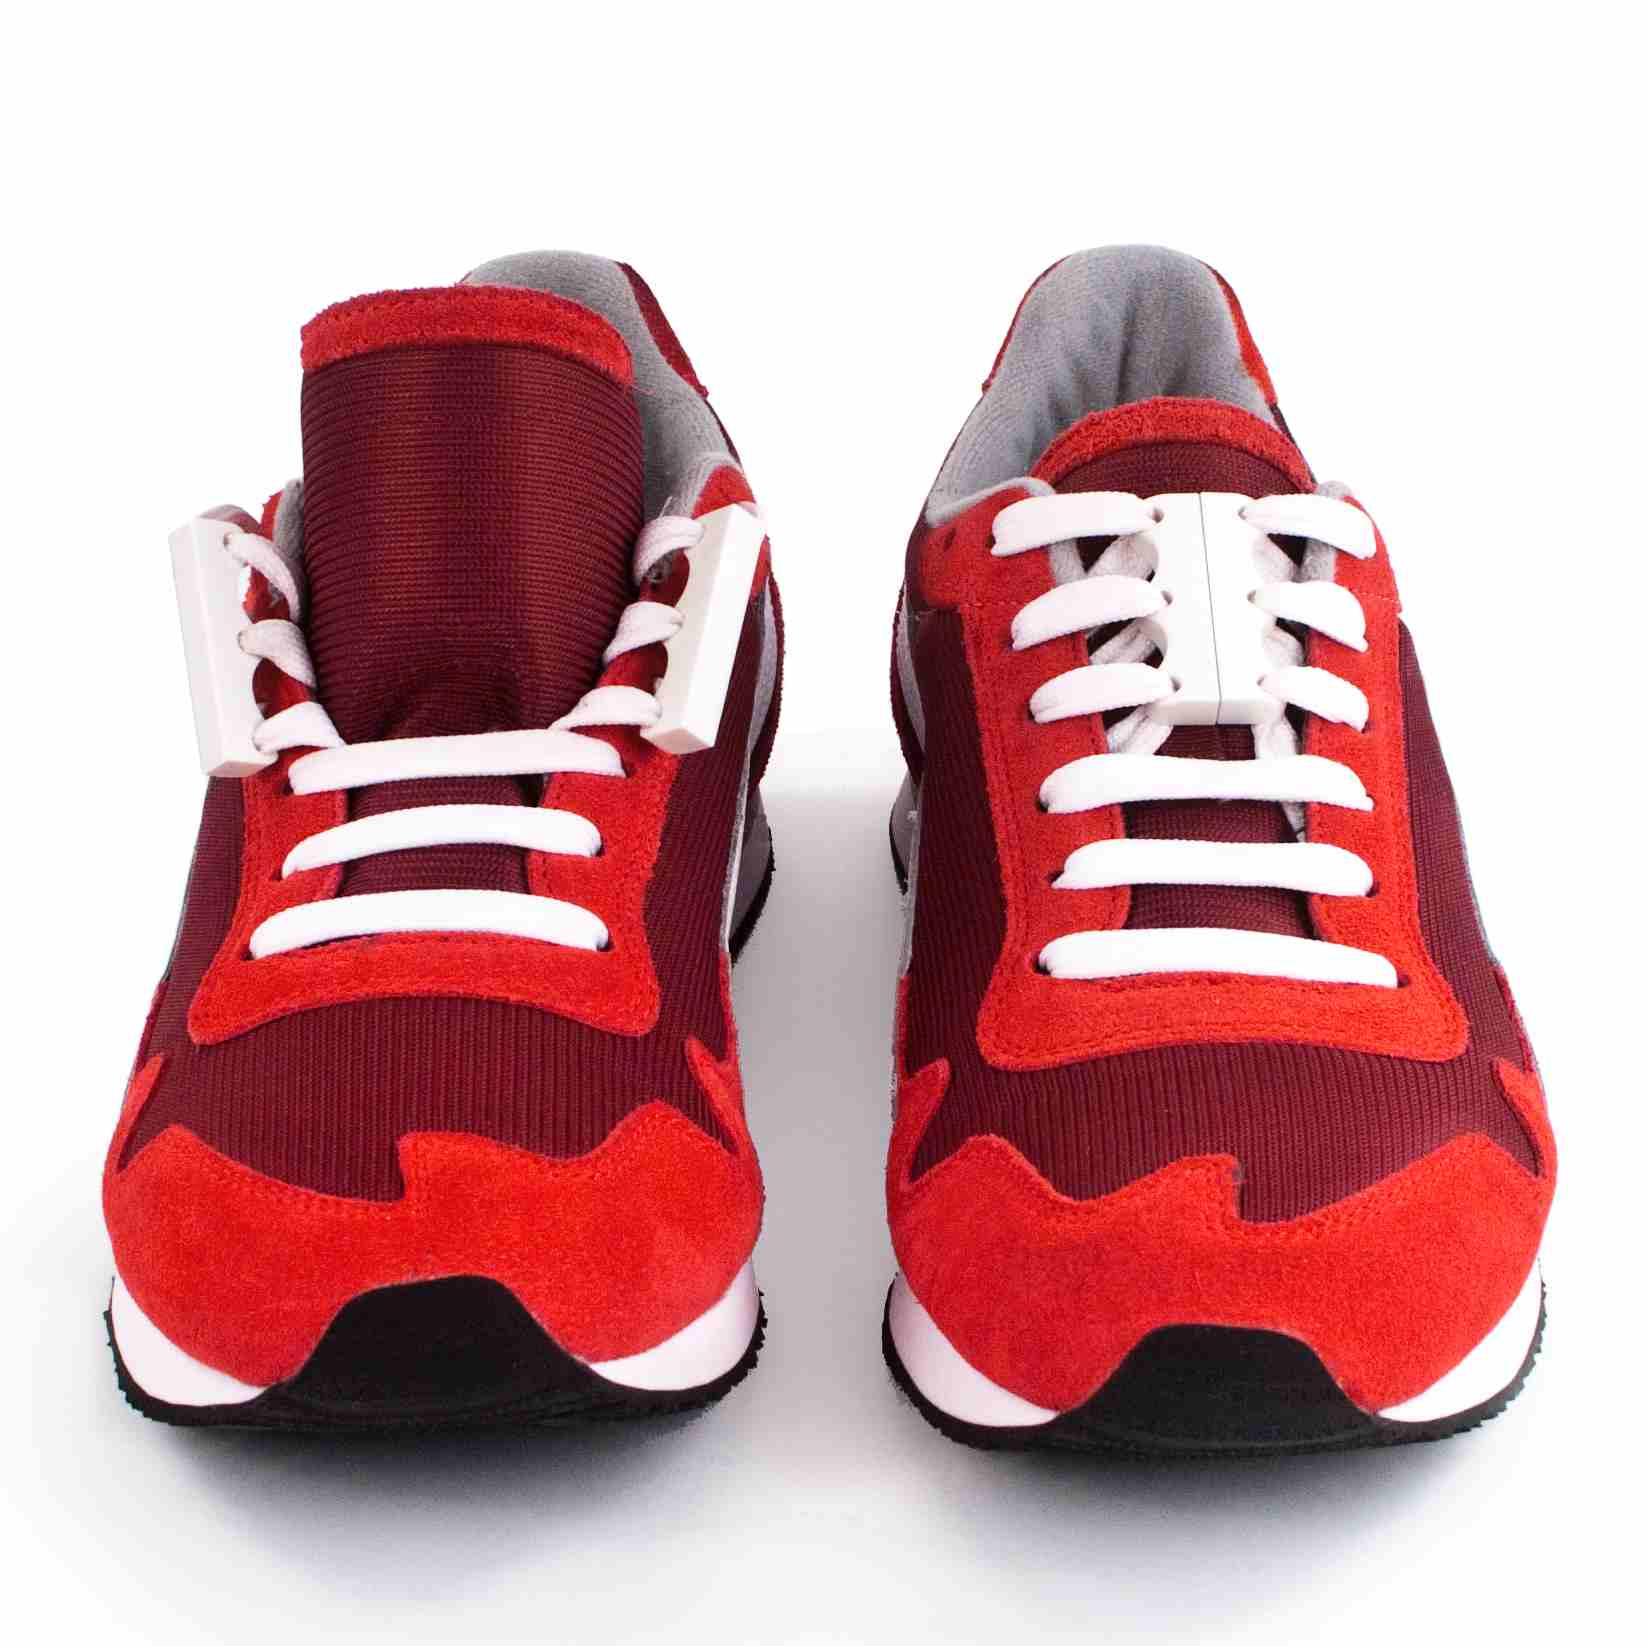 Zubits Brown On Red Shoes